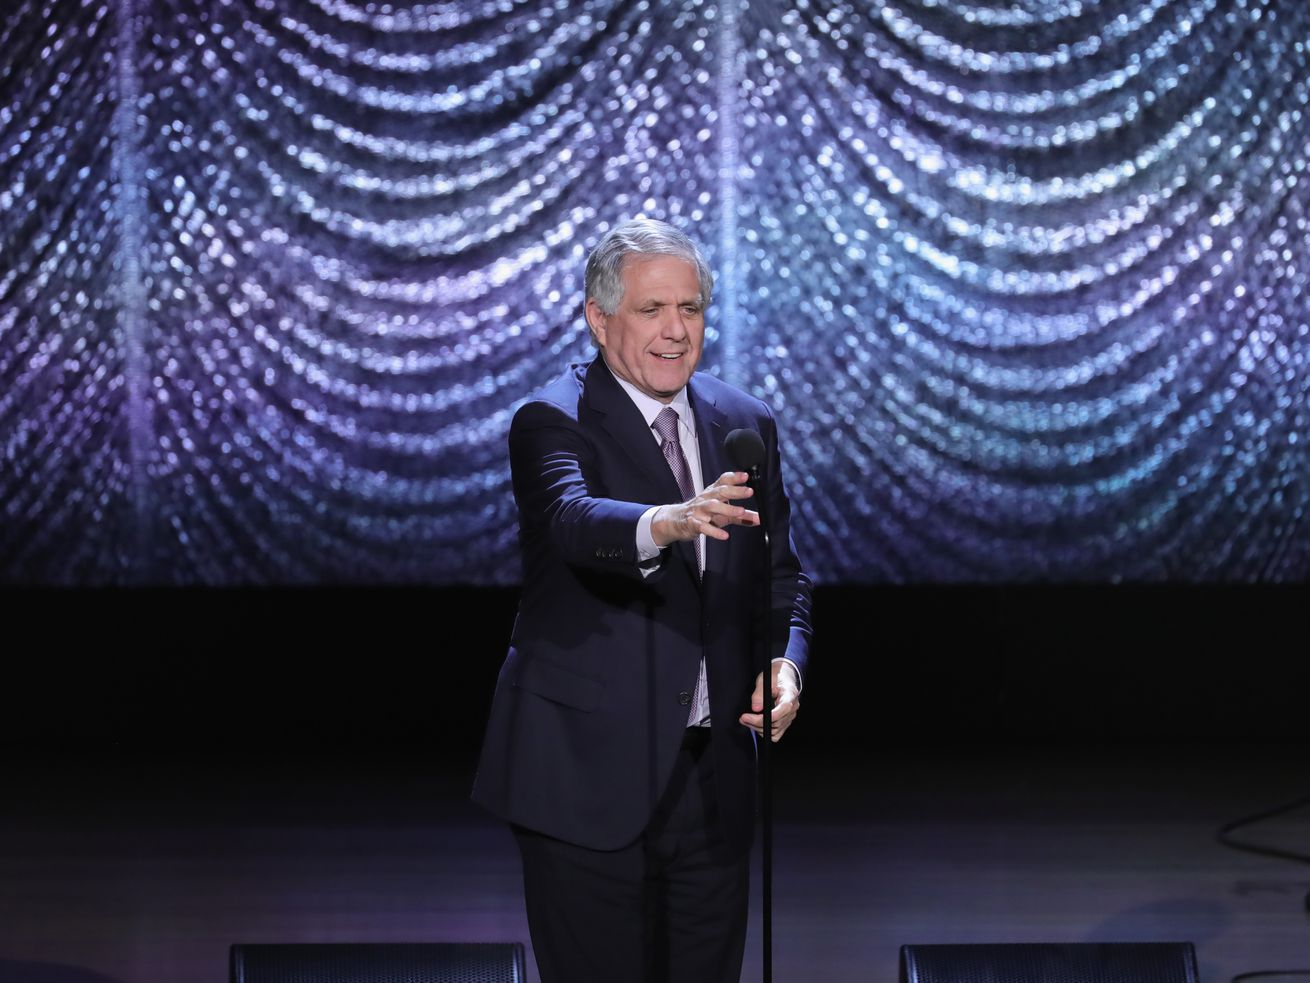 Leslie Moonves speaks onstage during Lincoln Center's American Songbook Gala at Alice Tully Hall on February 1, 2017, in New York City.